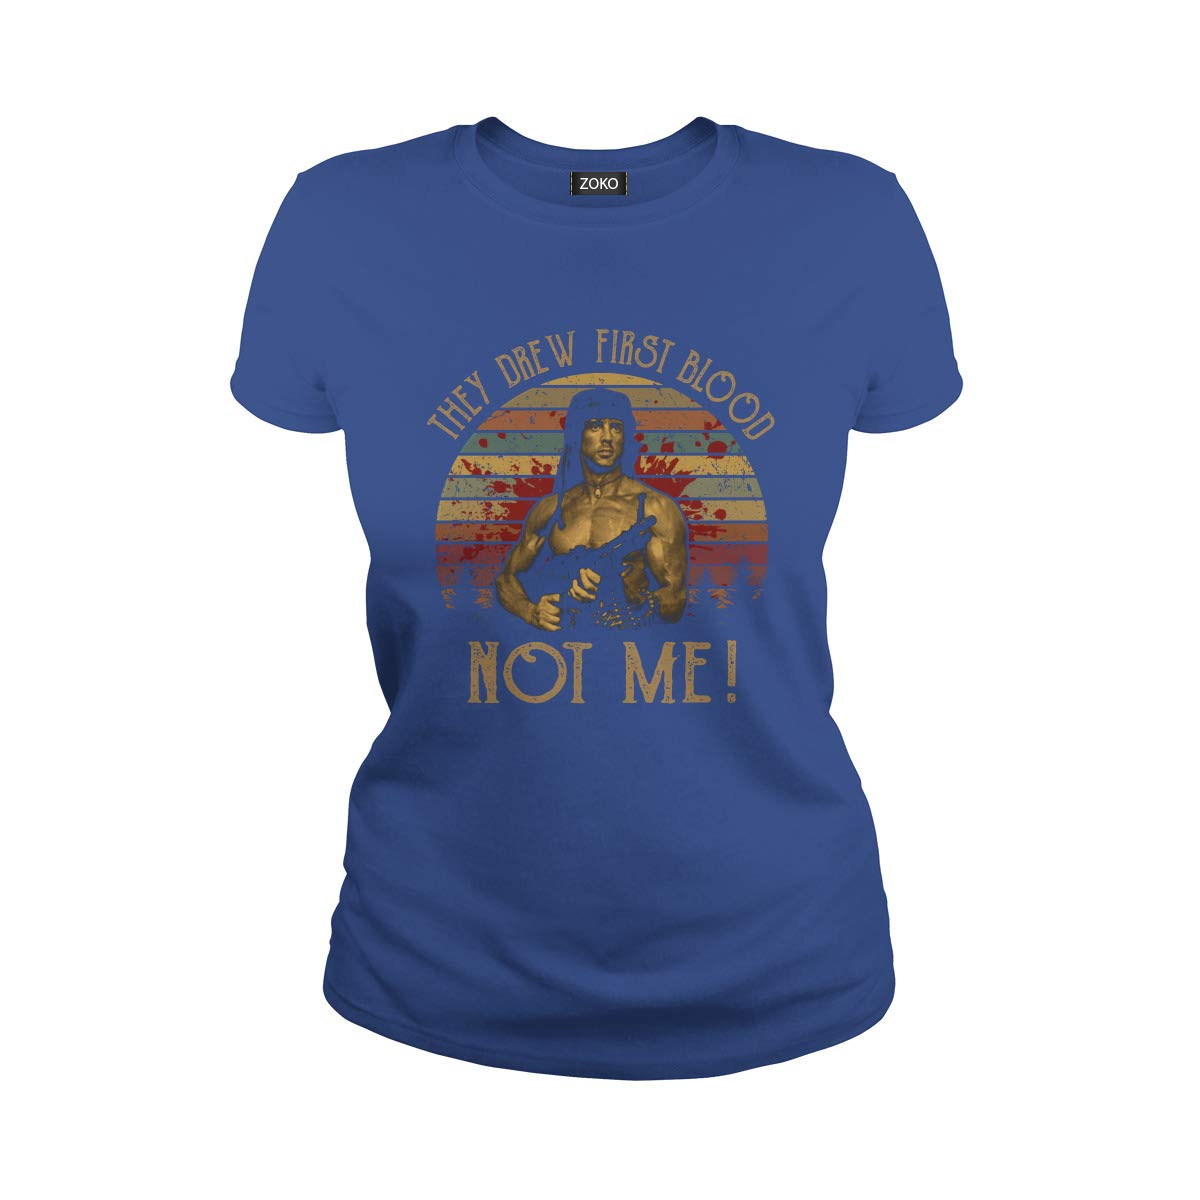 They Drew First Blood Not Me Vintage T-Shirt